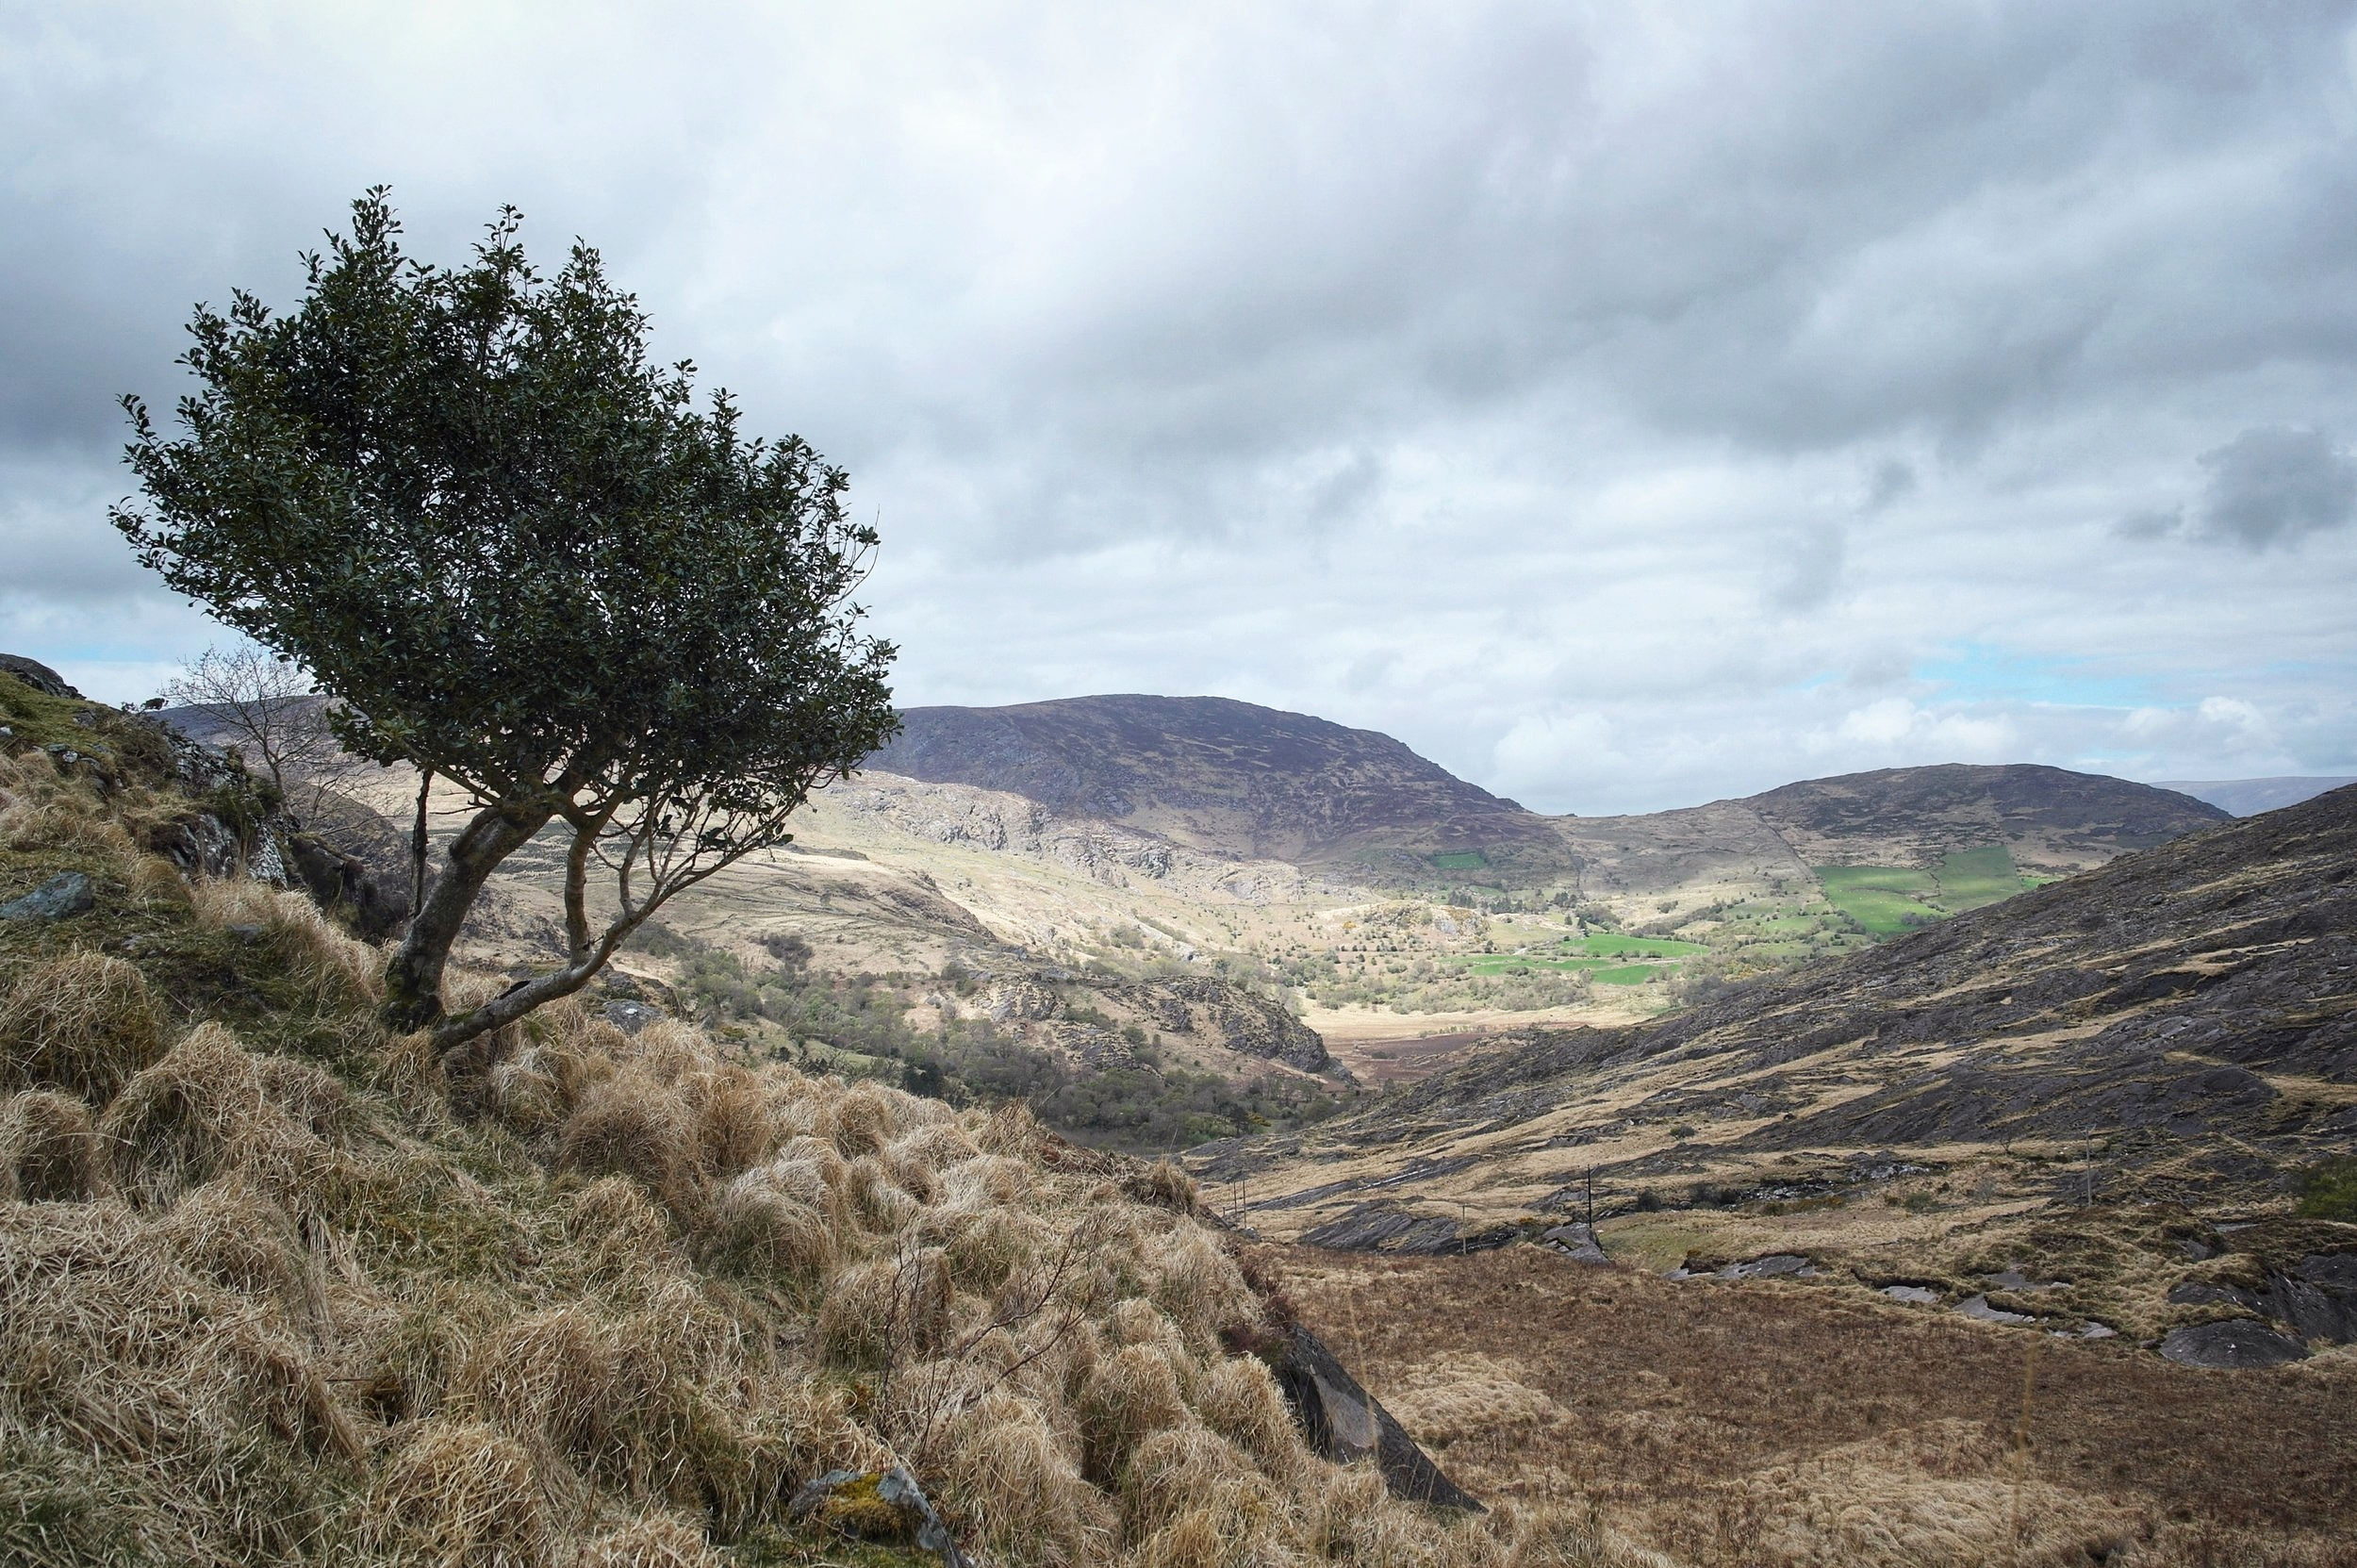 The Shehy Mountains of Southern Ireland. An amazing wilderness I only discovered this year. I would love to come back here again one day and explore some more.